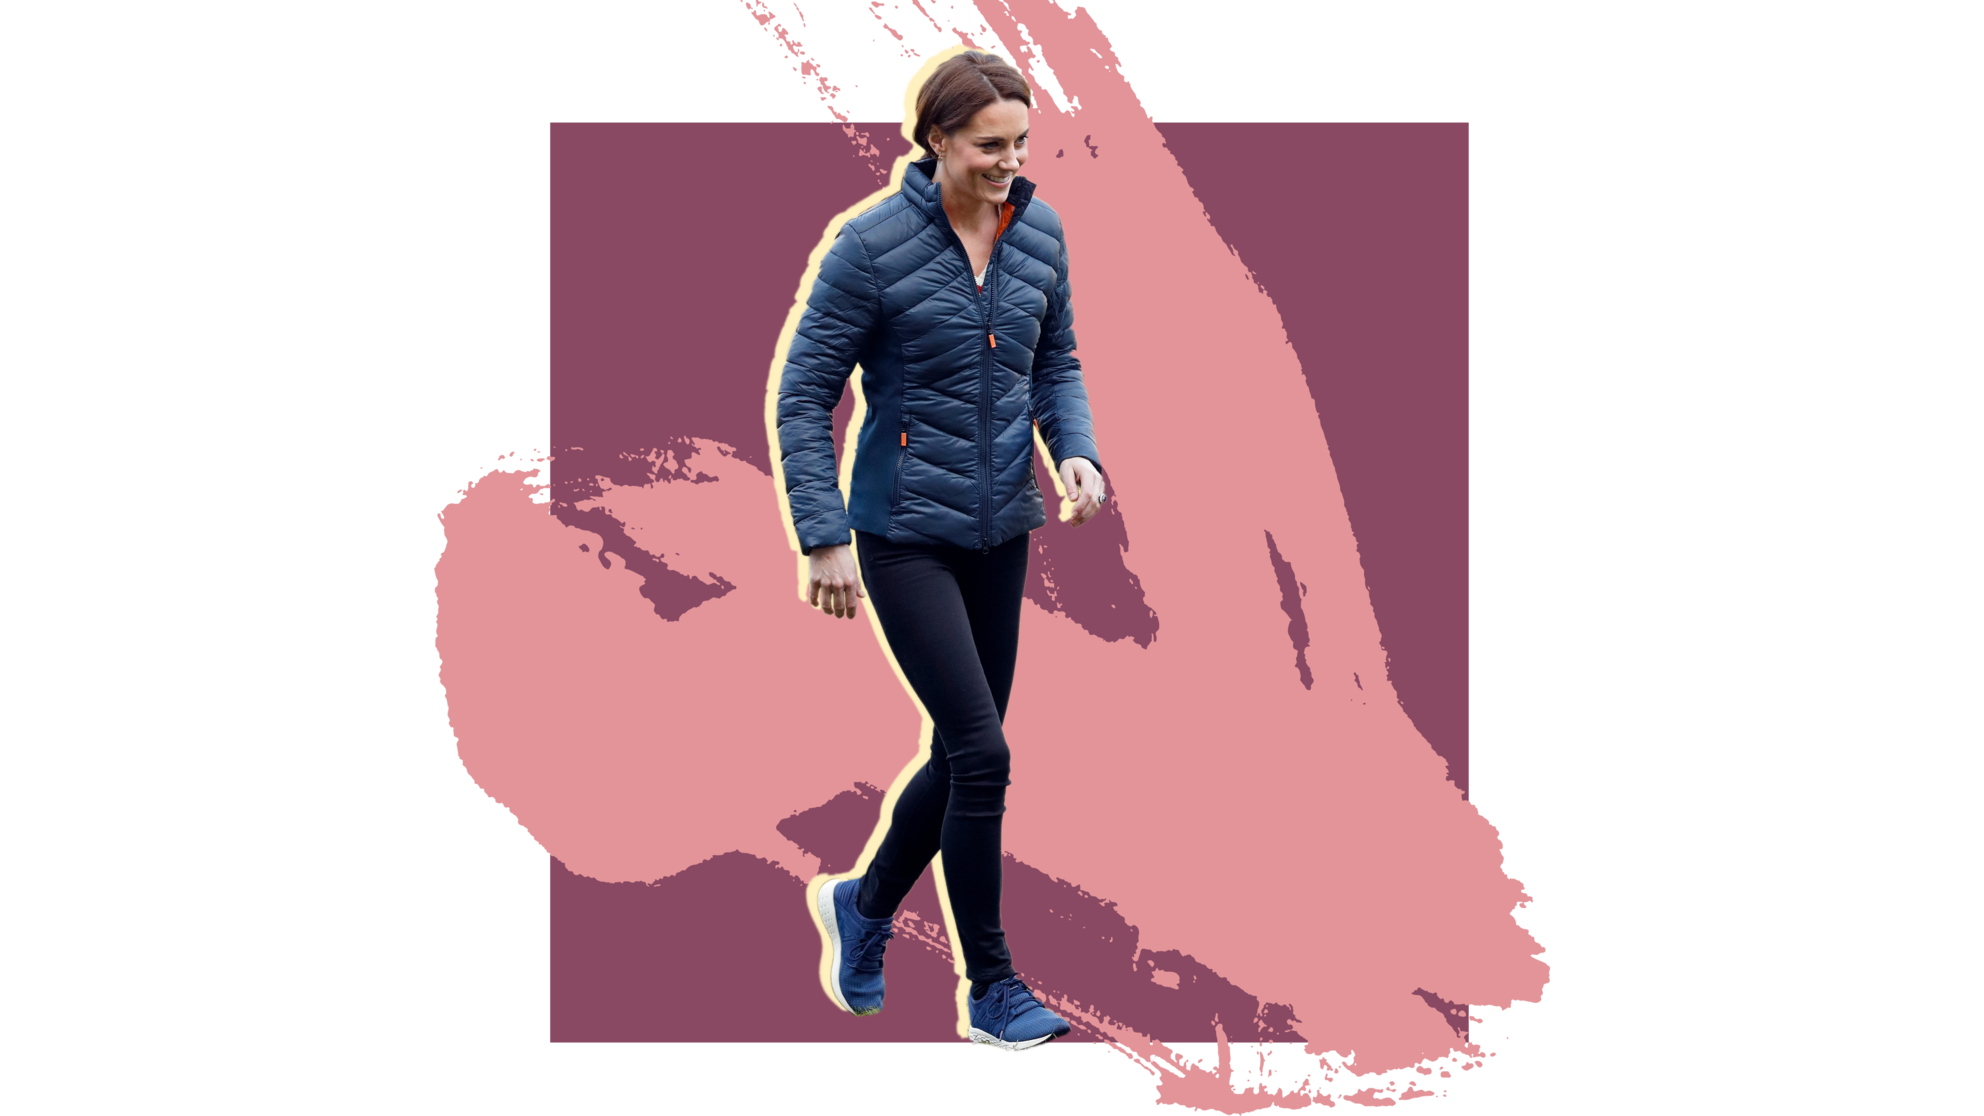 kate-middleton sneakers soccer football woman exercise workout health wellbeing sport